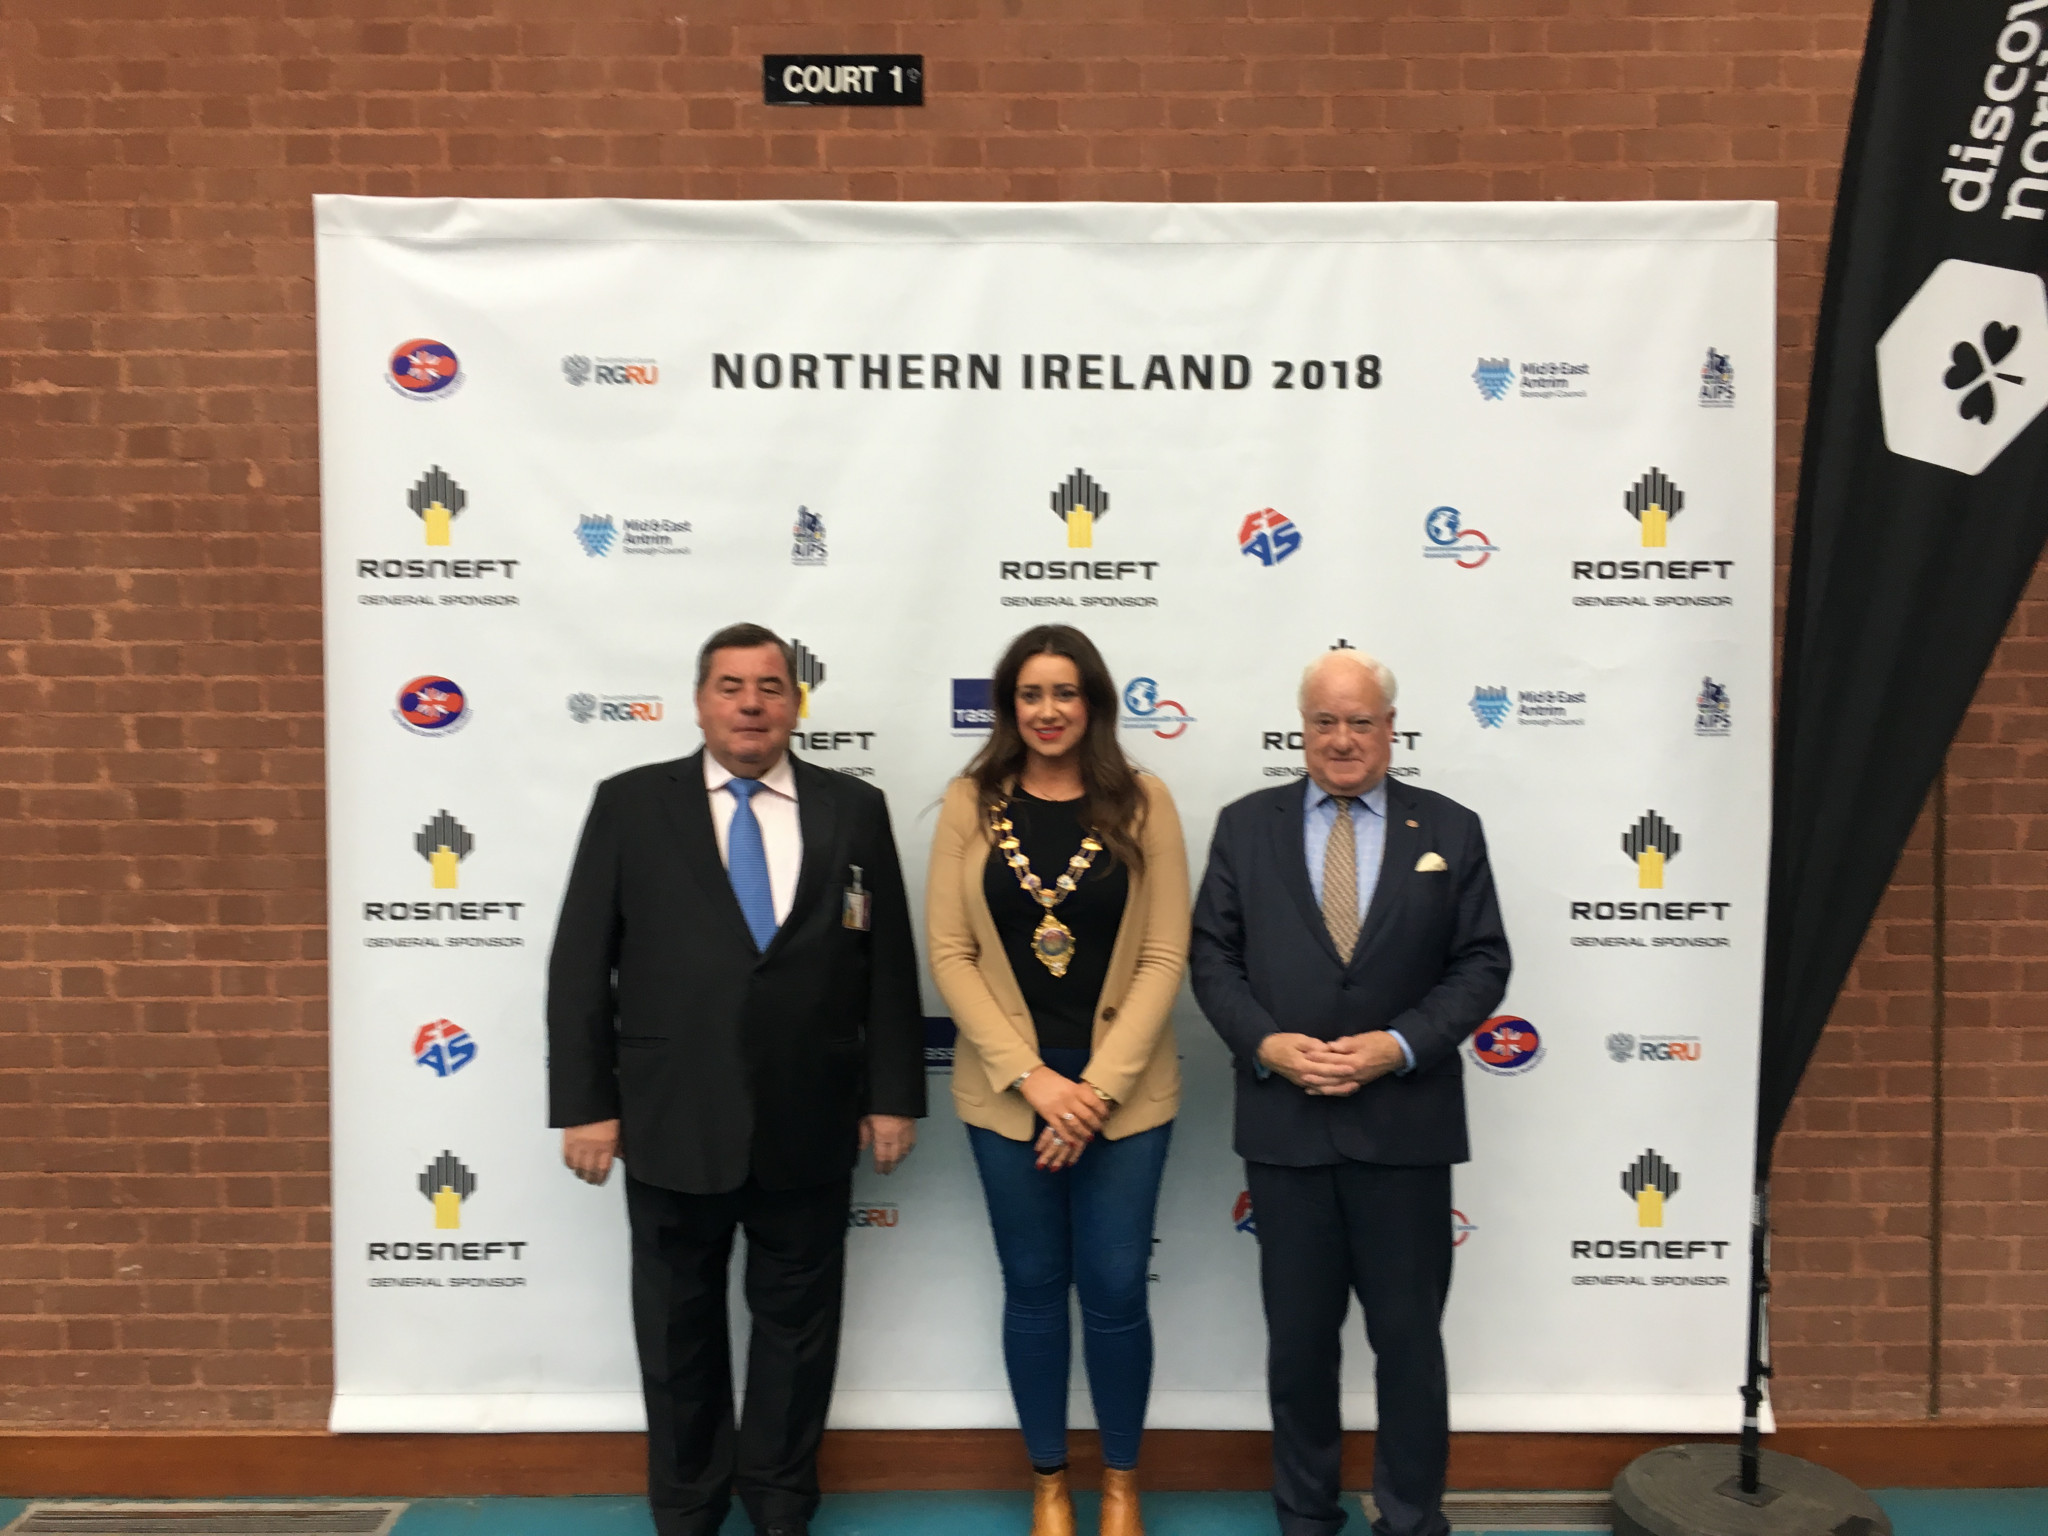 FIAS President Vasily Shestakov was impressed with the quality of athletes from Great Britain at the Sambo President's Cup in Ballymena today ©ITG